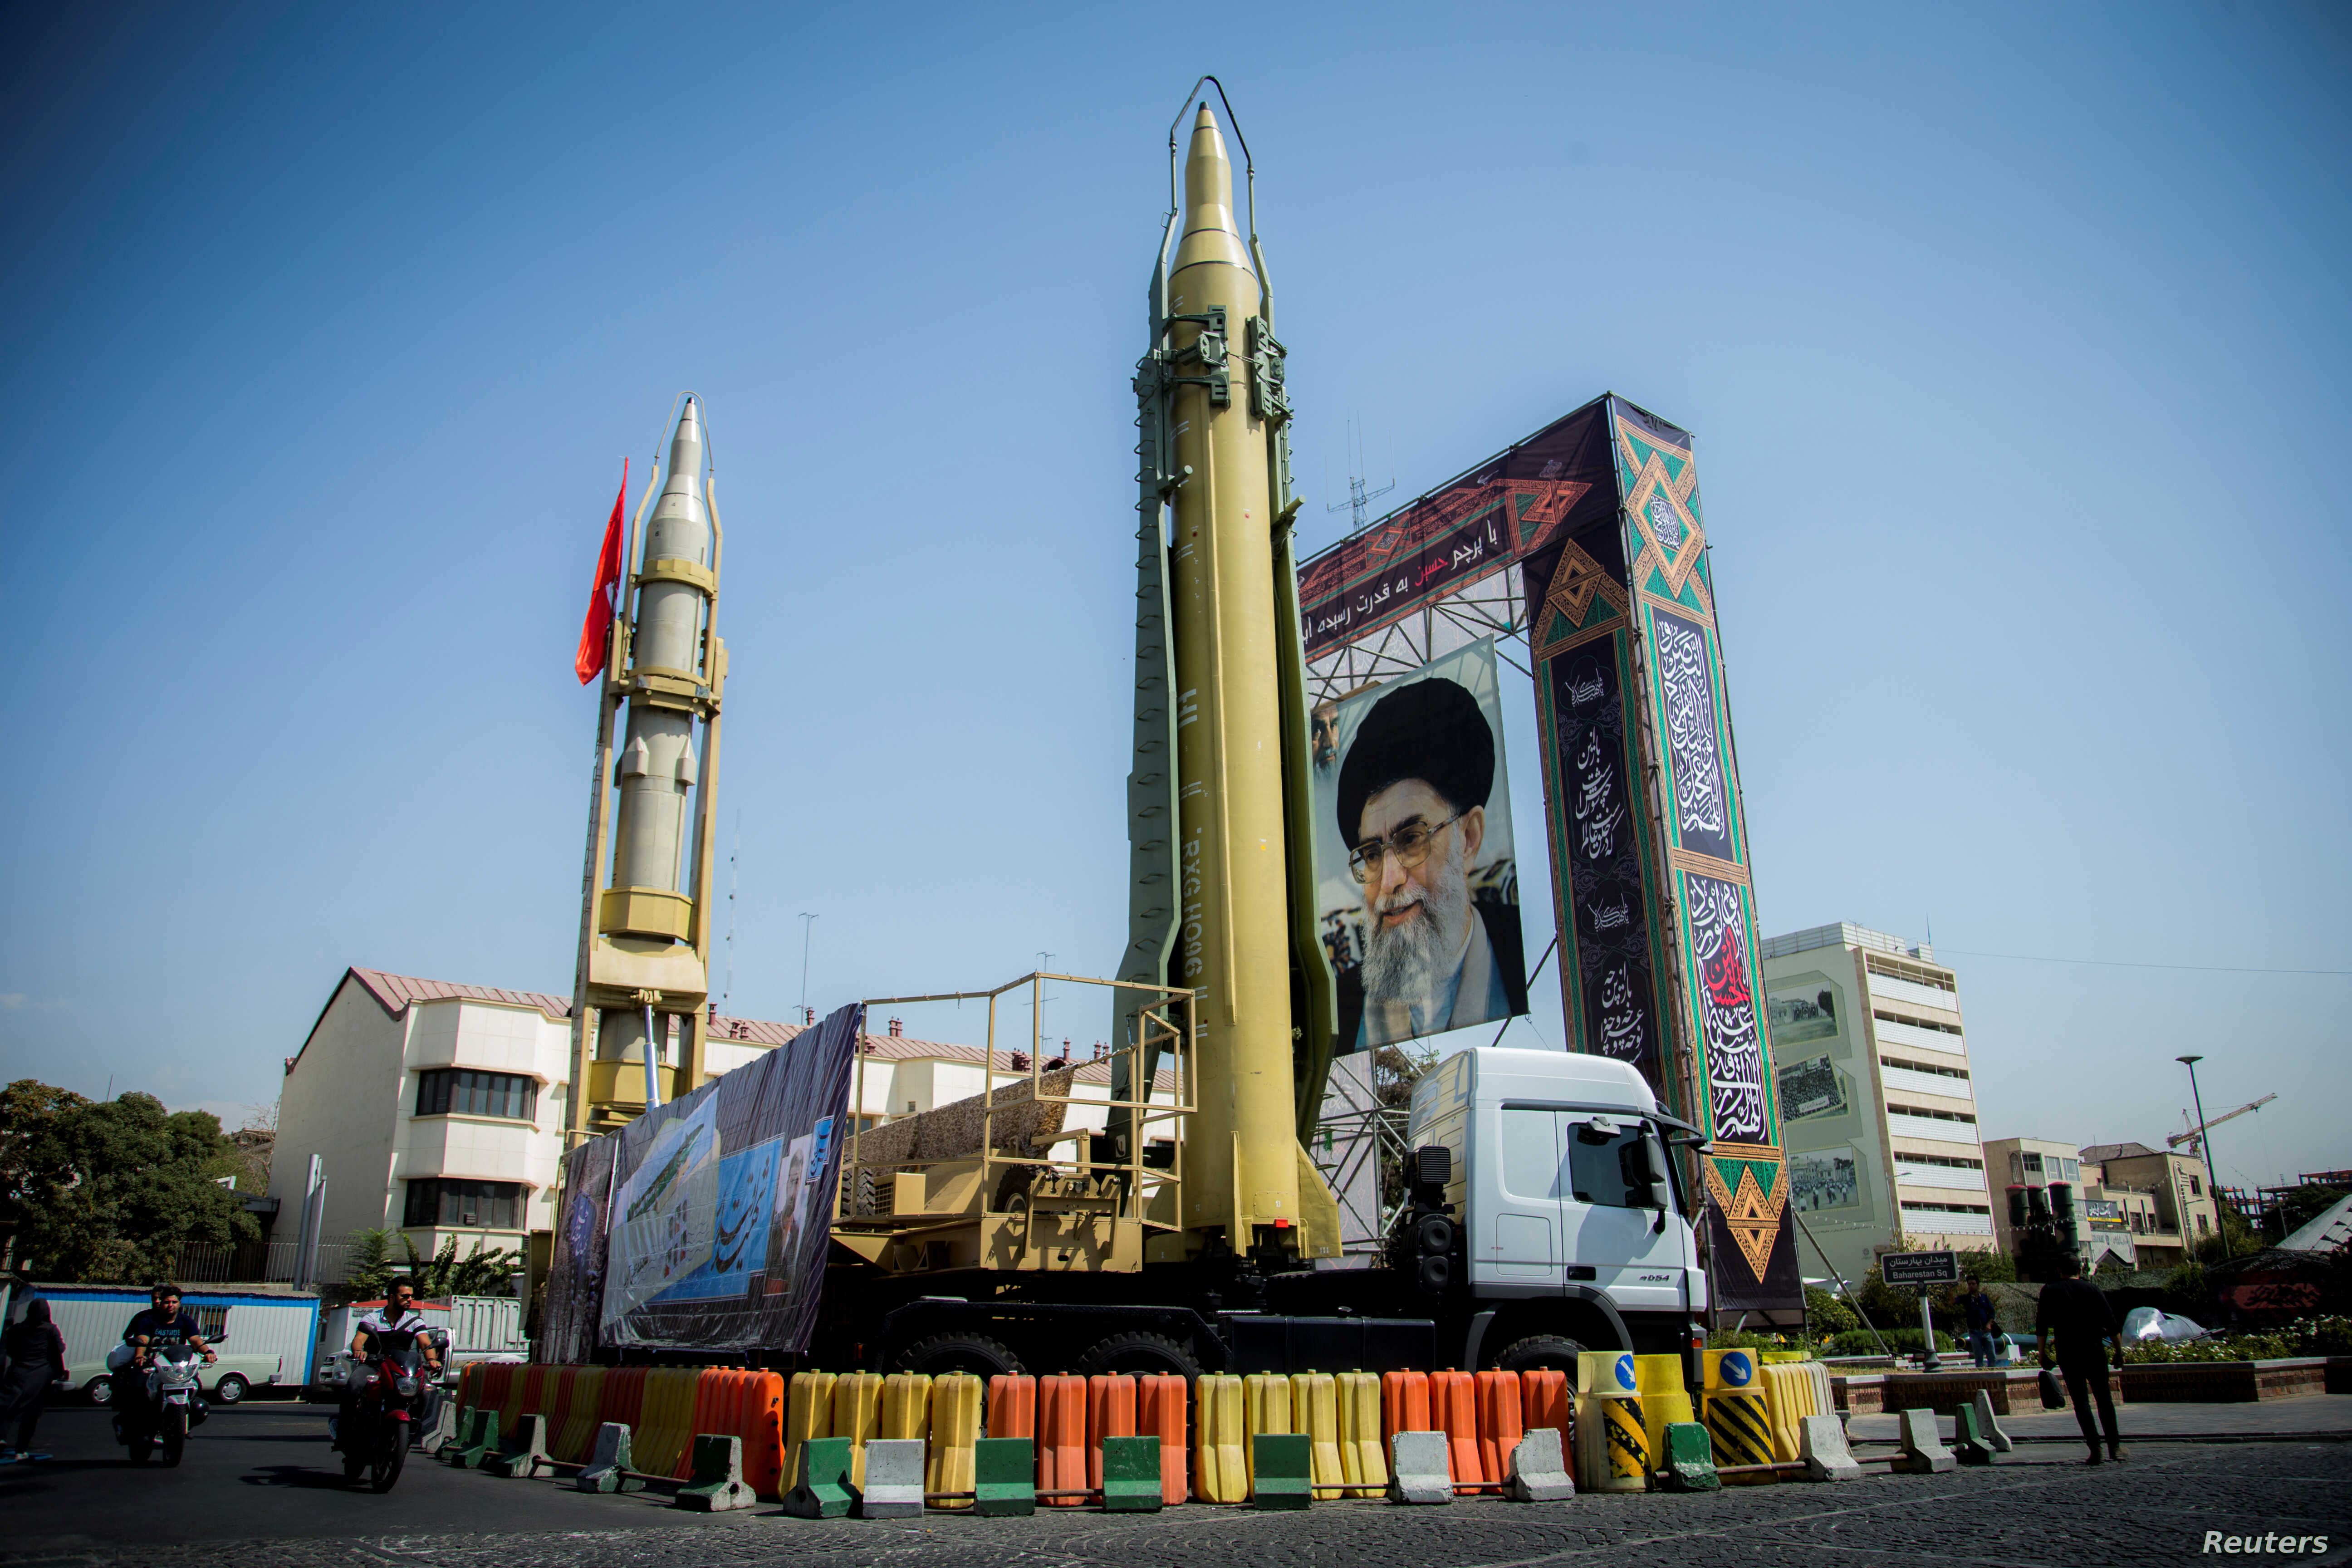 FILE PHOTO: A display featuring missiles and a portrait of Iran's Supreme Leader Ayatollah Ali Khamenei is seen at Baharestan Square in Tehran, Iran Sept. 27, 2017.